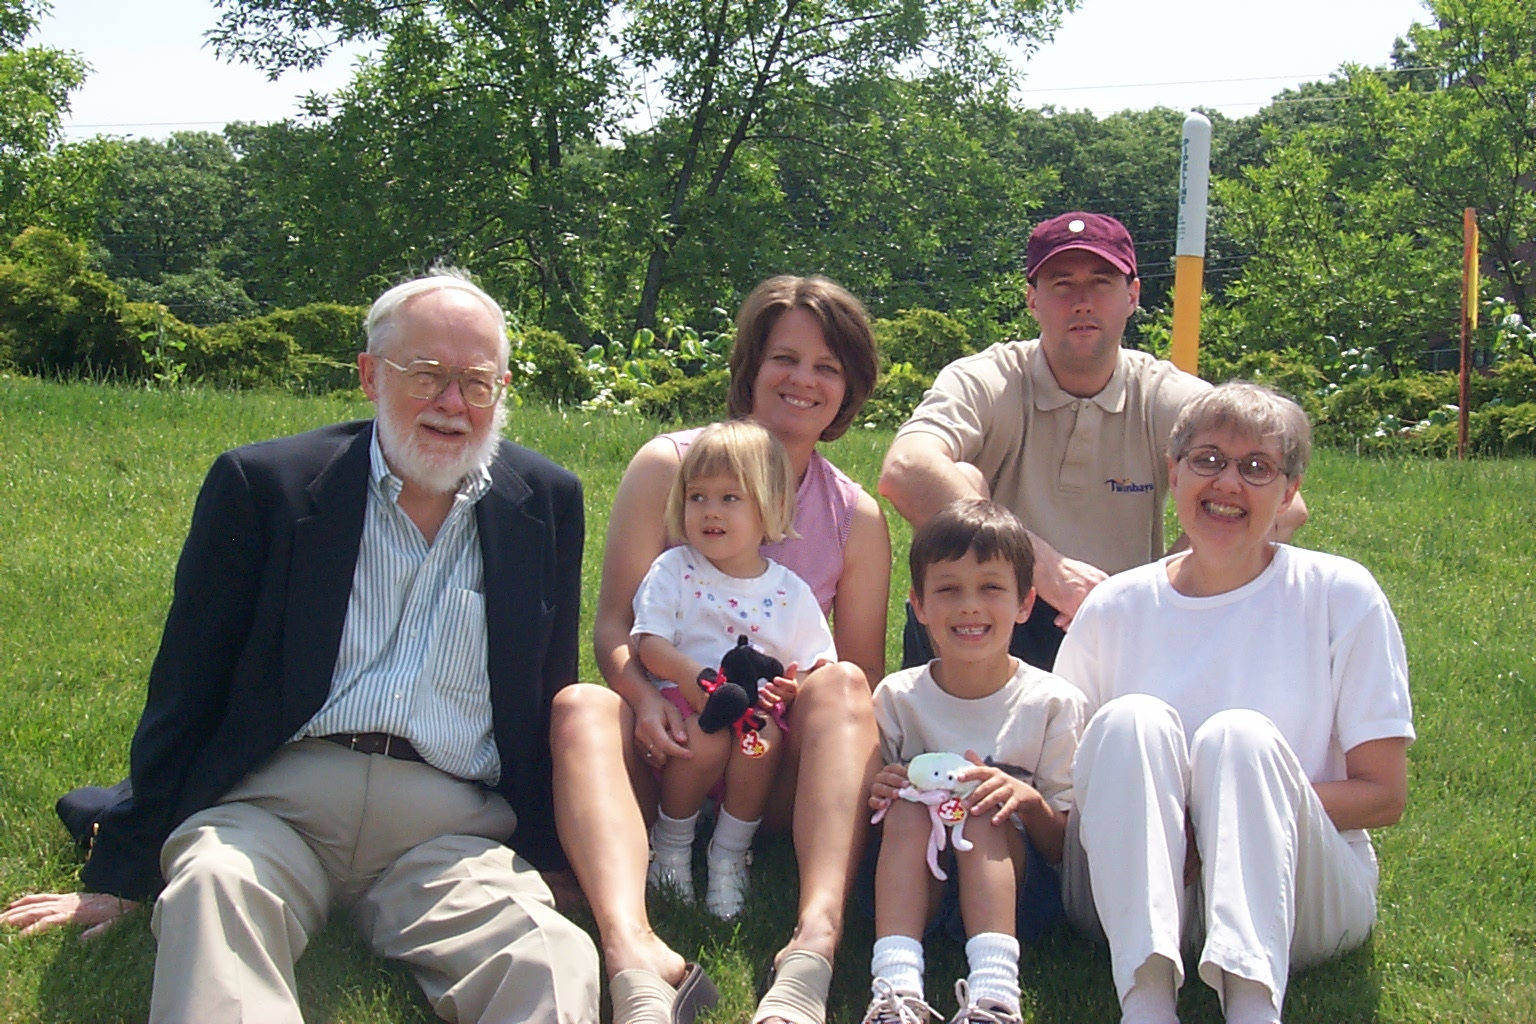 Image: six people, all white posed sitting on a lawn: older man, white hair & beard; young woman in a pink t-shirt holding a toddler with a plush animal in her lap; young boy in t-shirt also with beanie baby toy, man wearing ball cap and beige polo shirt, and mom, in a white t-shirt and khakis.